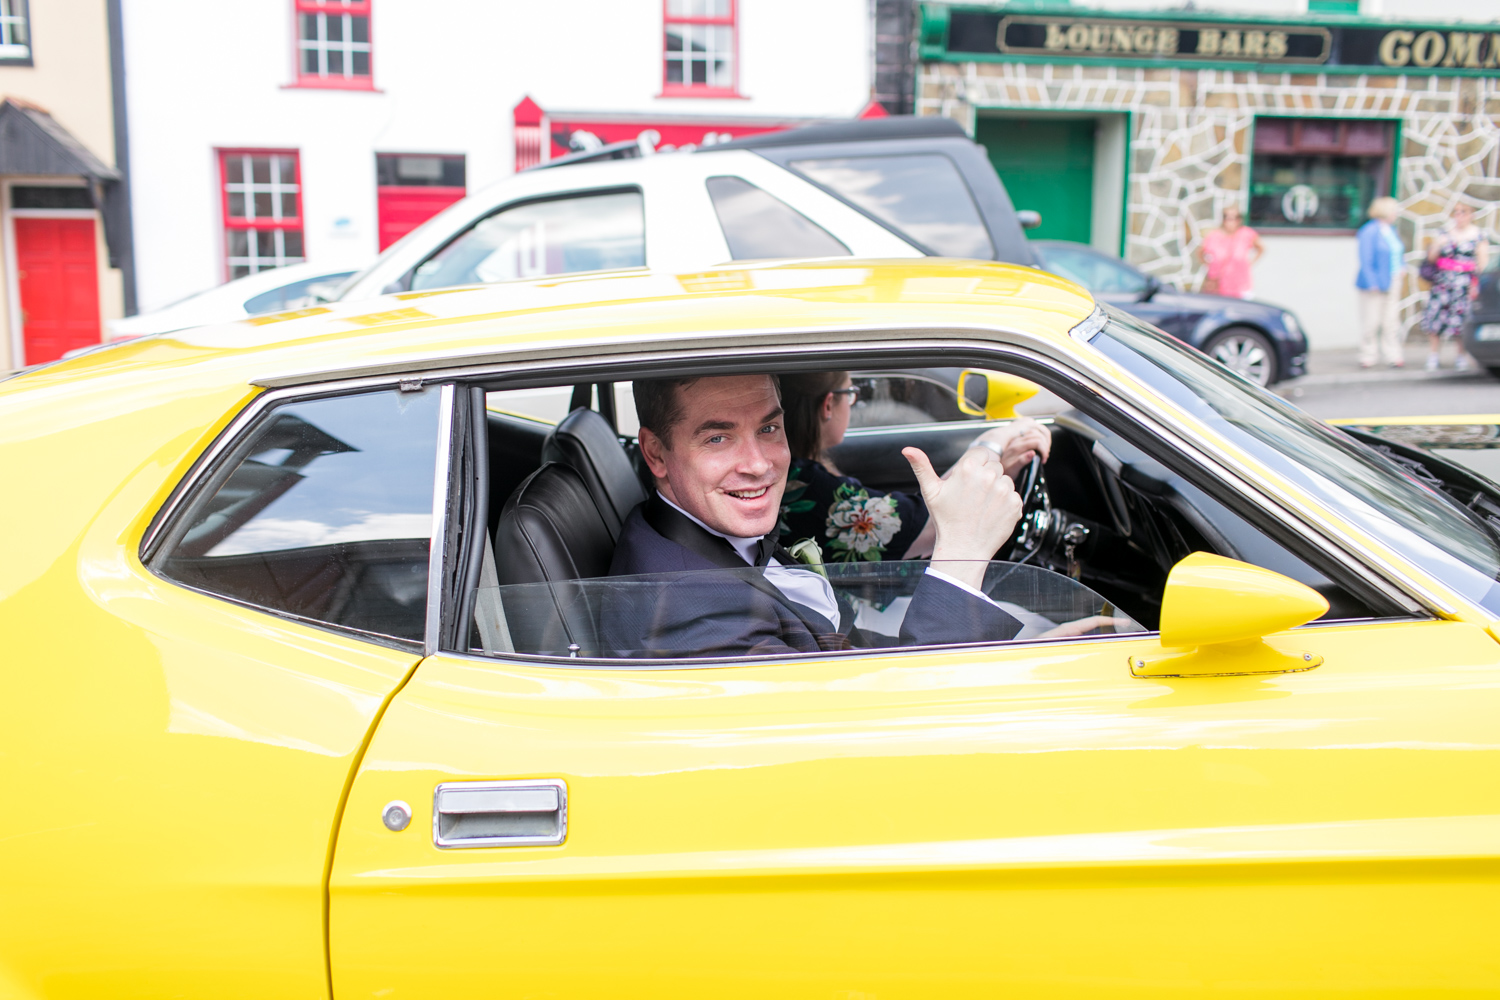 yellow mustang outside the wedding church ceremony as groom arrives